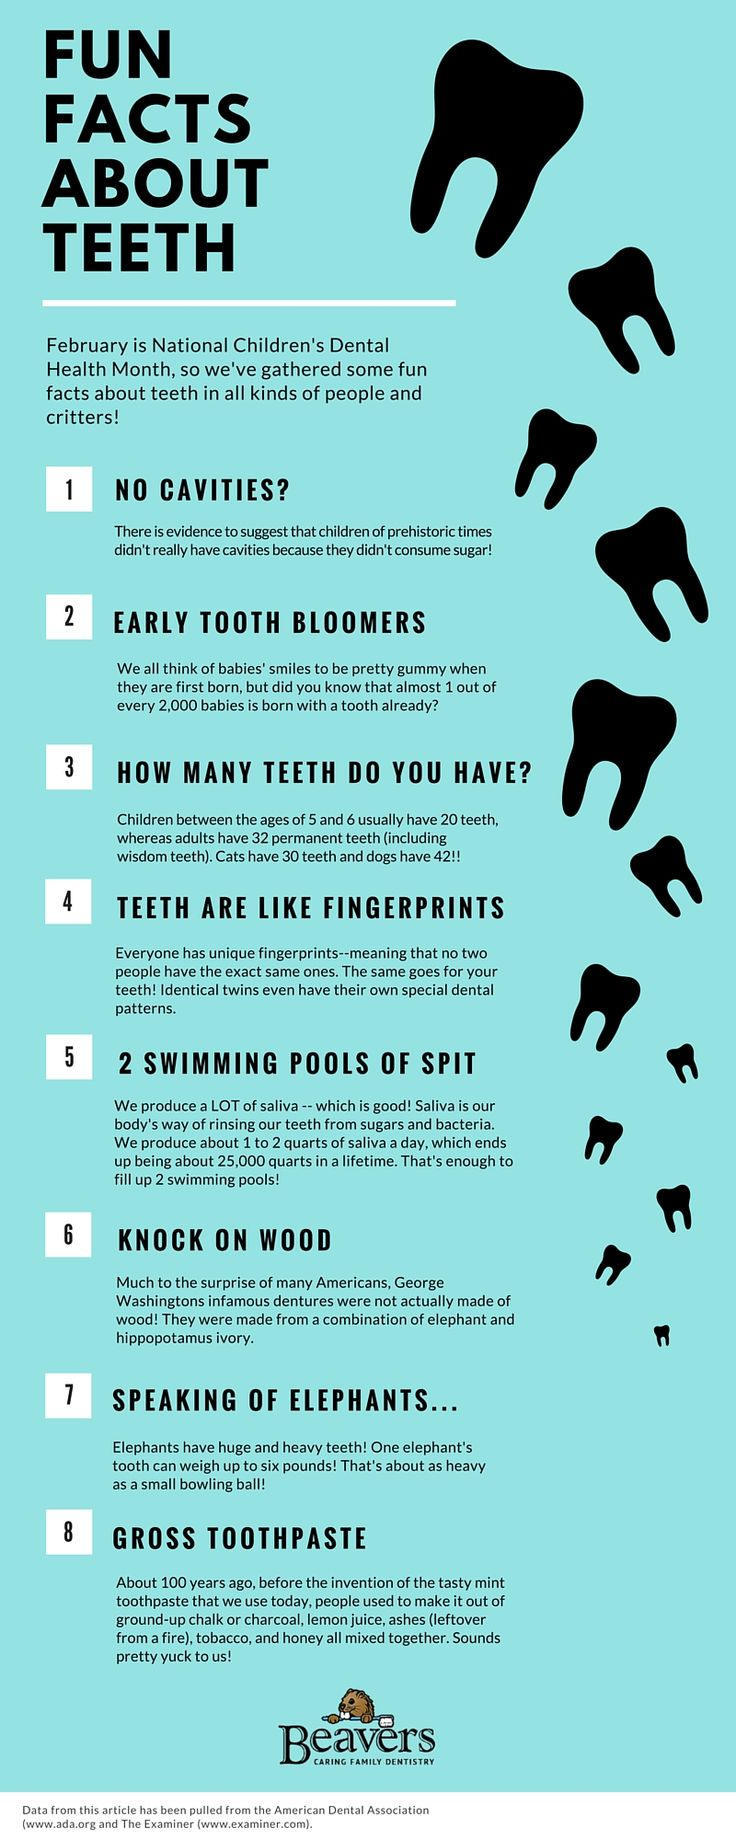 Brushing new toothbrush claims to clean teeth in 6 seconds abc news - Over Of The World S Youth Has At Least One Cavity That S Been Left Untreated Let S Raise Awareness Together We Ve Gathered Some Fun Facts About Teeth